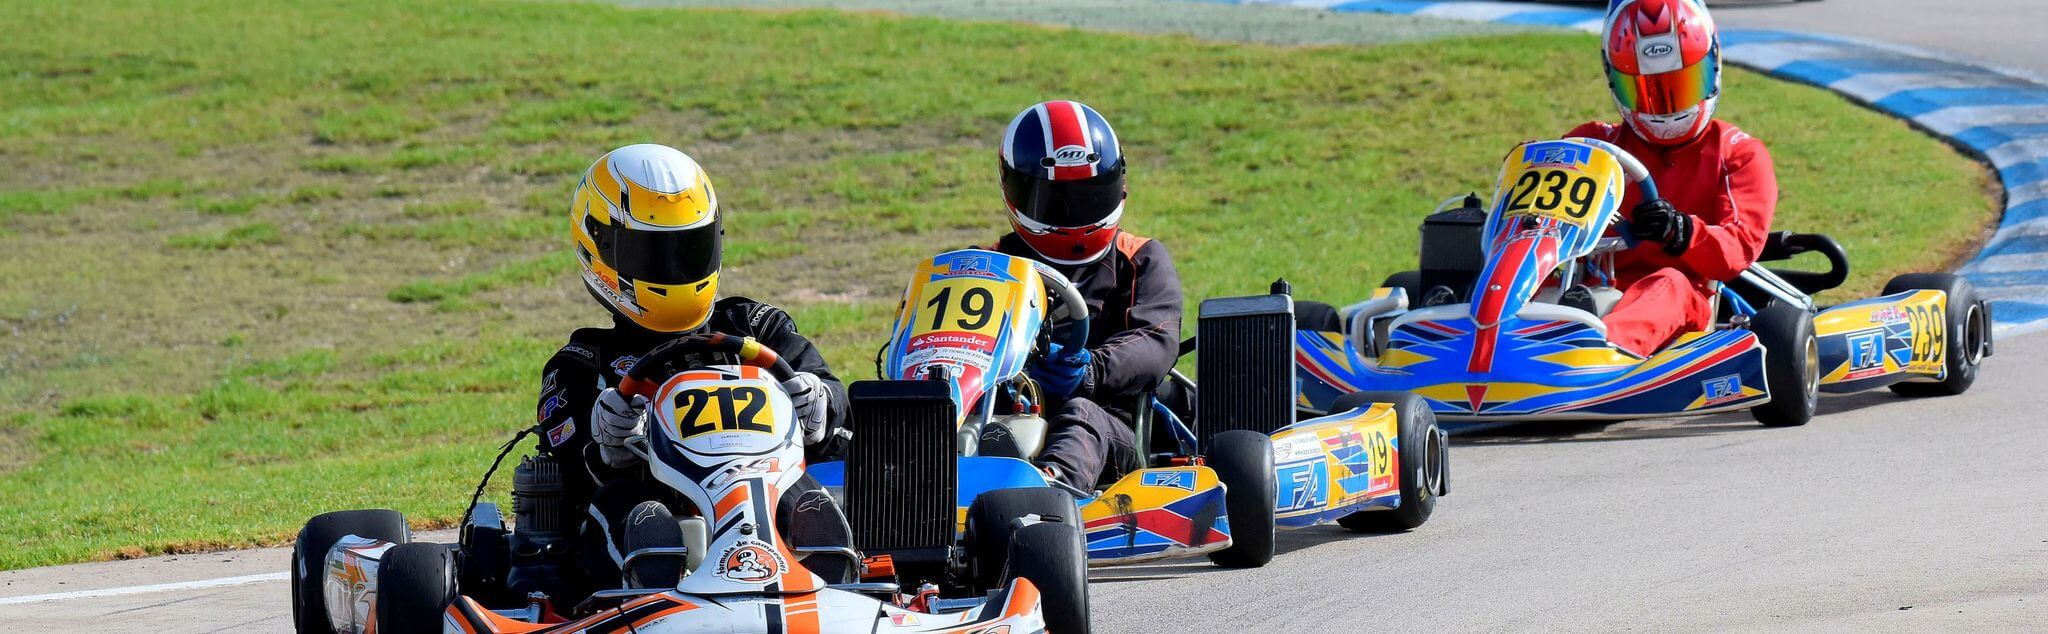 Karting in El Ejido